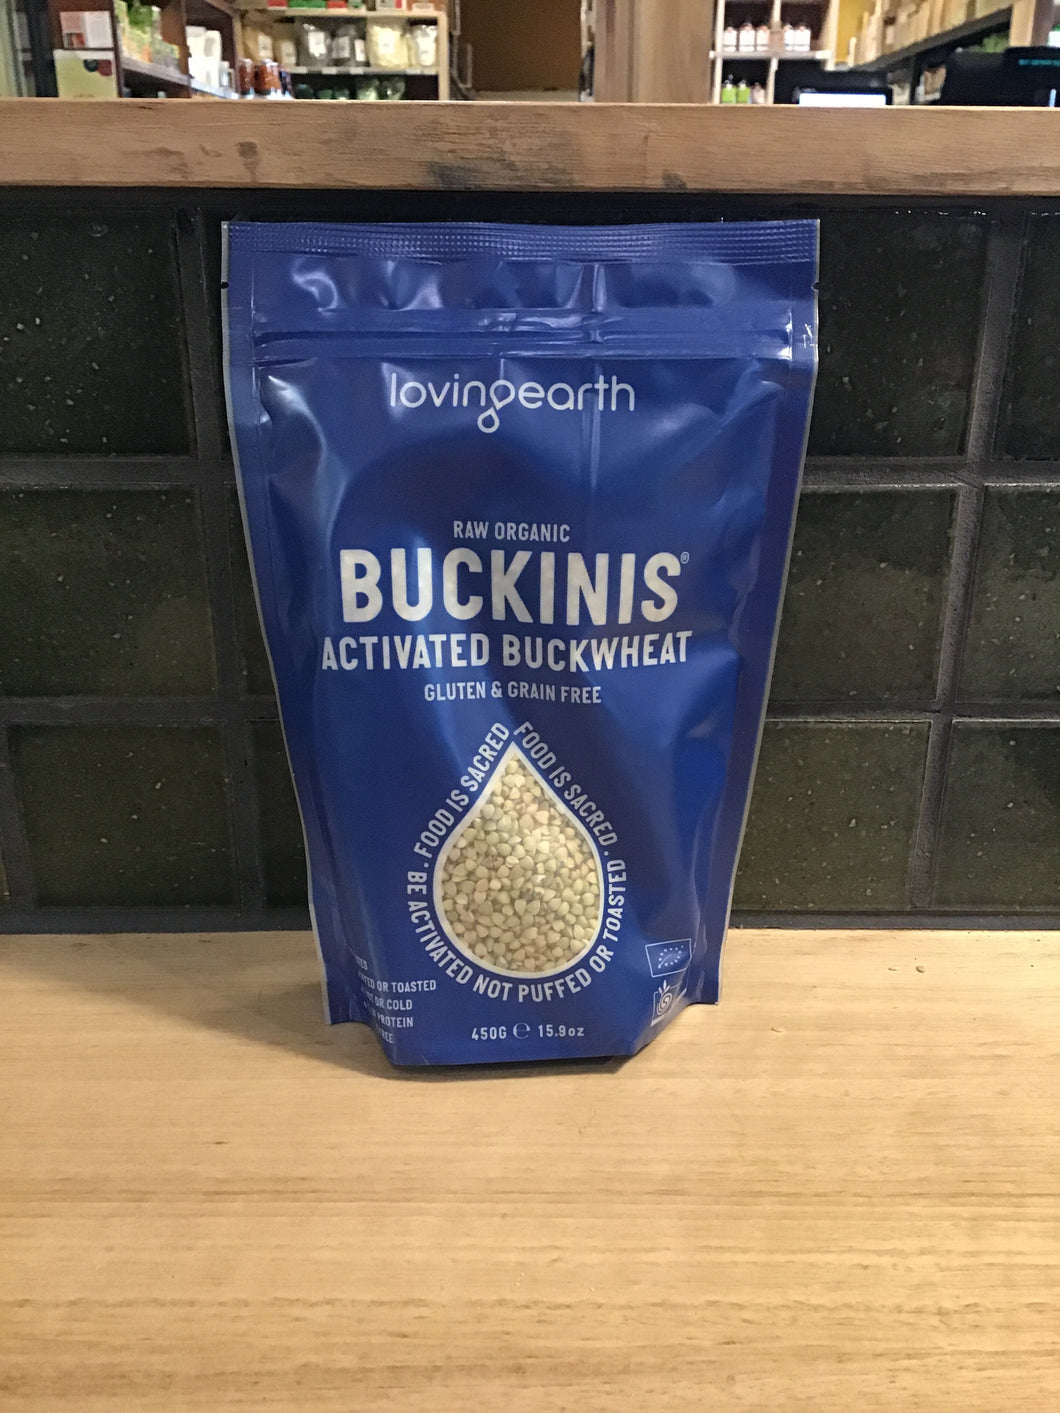 Loving Earth Buckinis Activated Buckwheat 450g